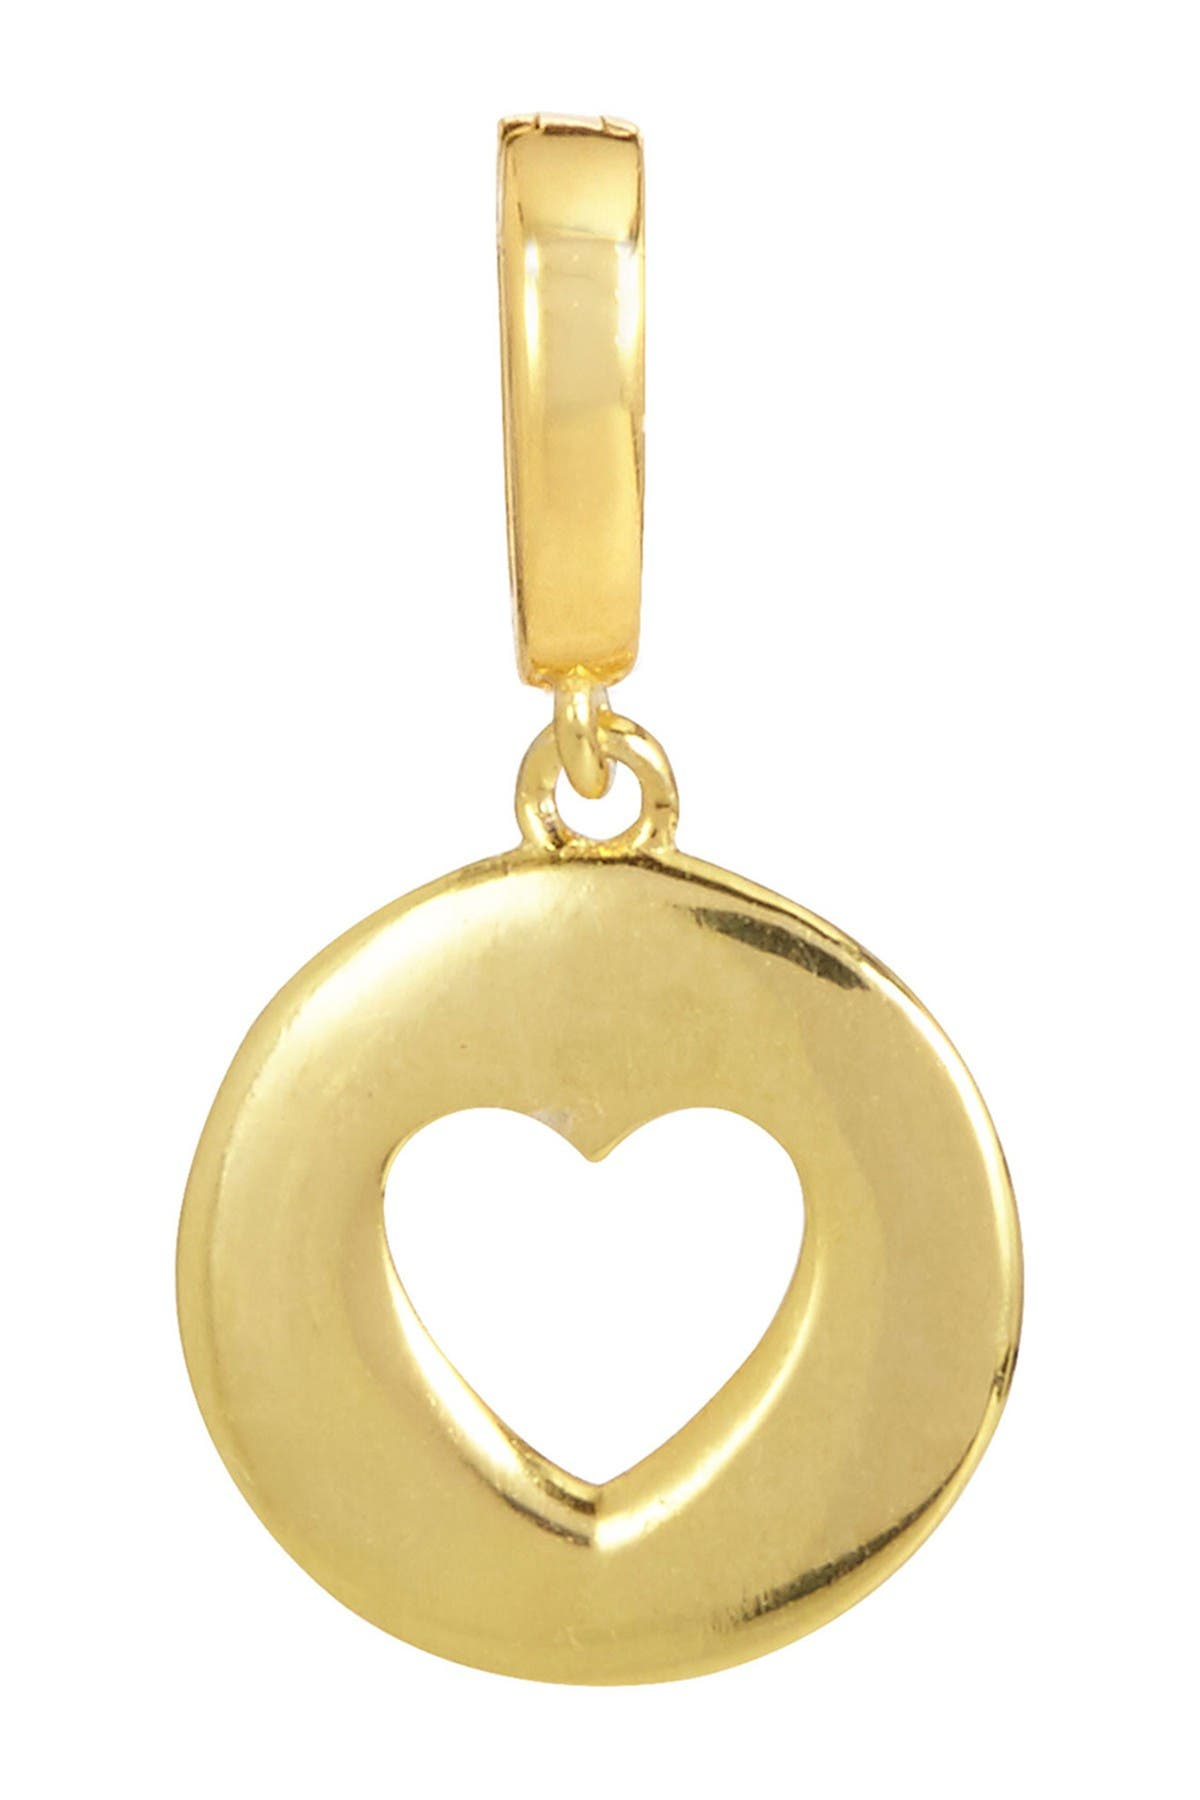 Image of Savvy Cie 18K Yellow Gold Vermeil Open Heart Charm